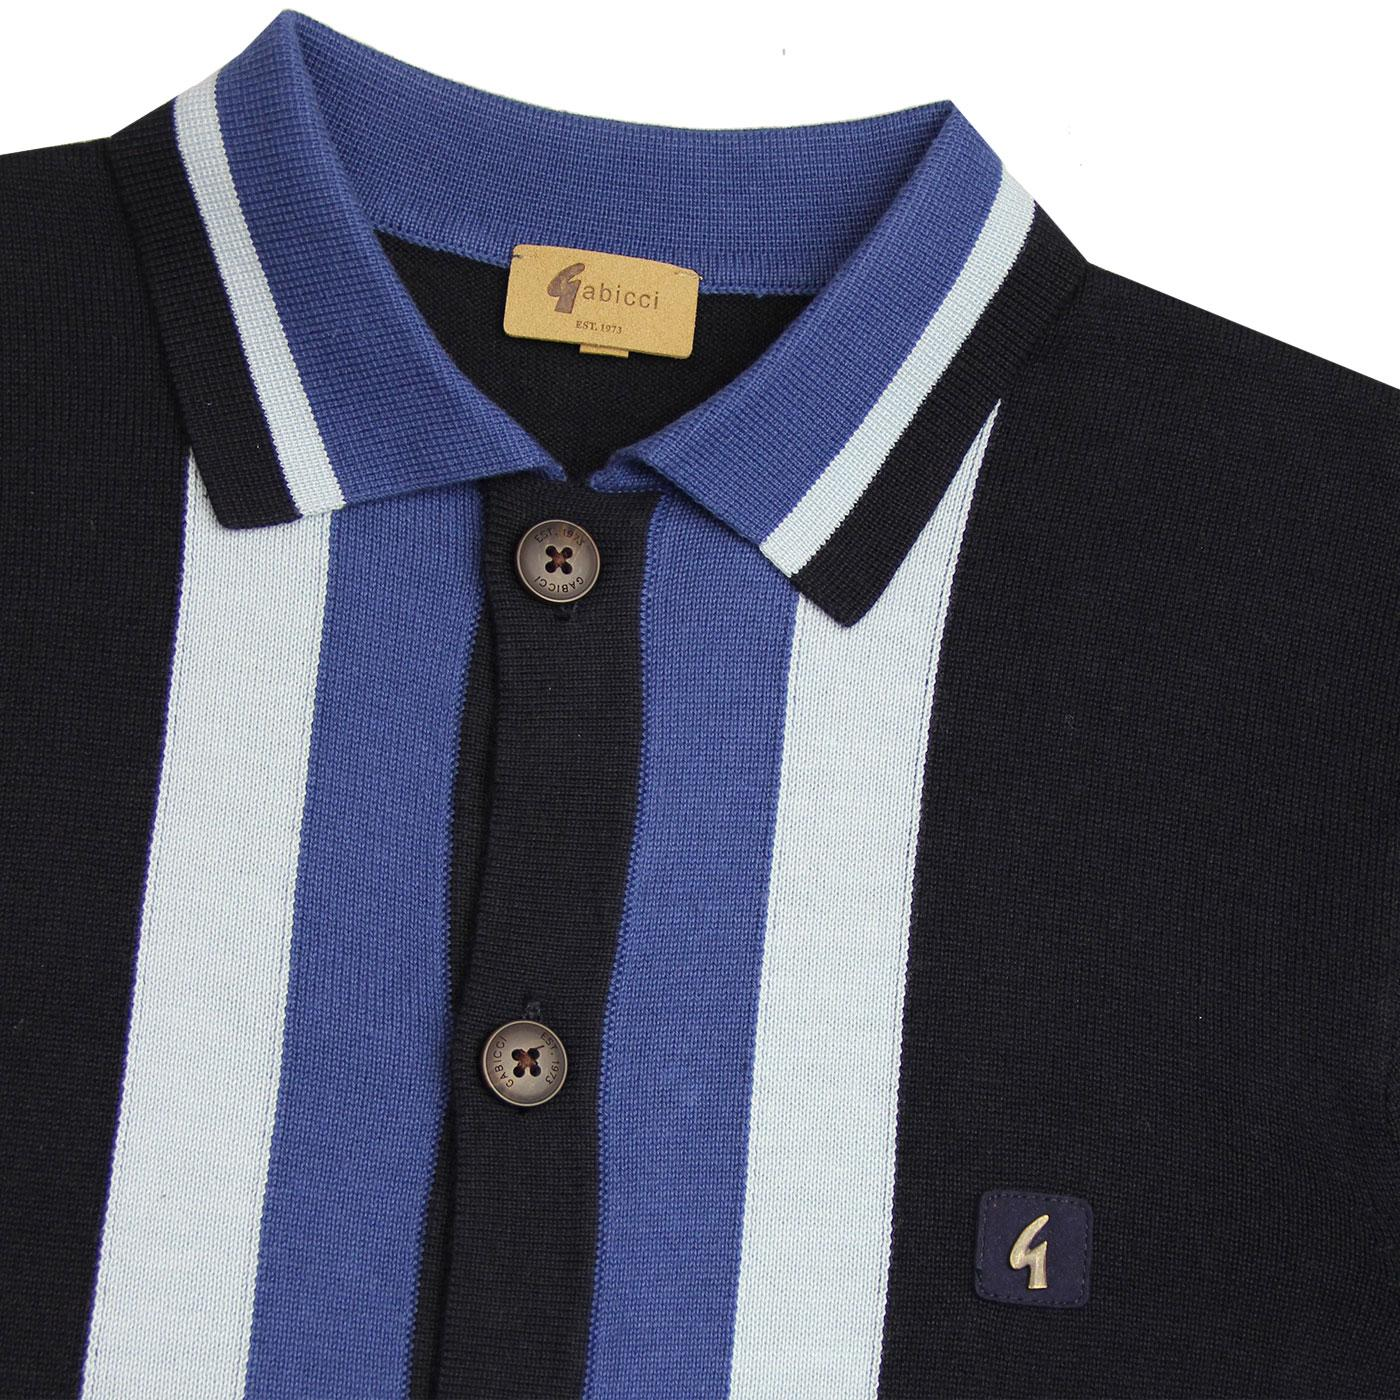 Gabicci Vintage Mens Fistral Blue Retro Polo Shirt